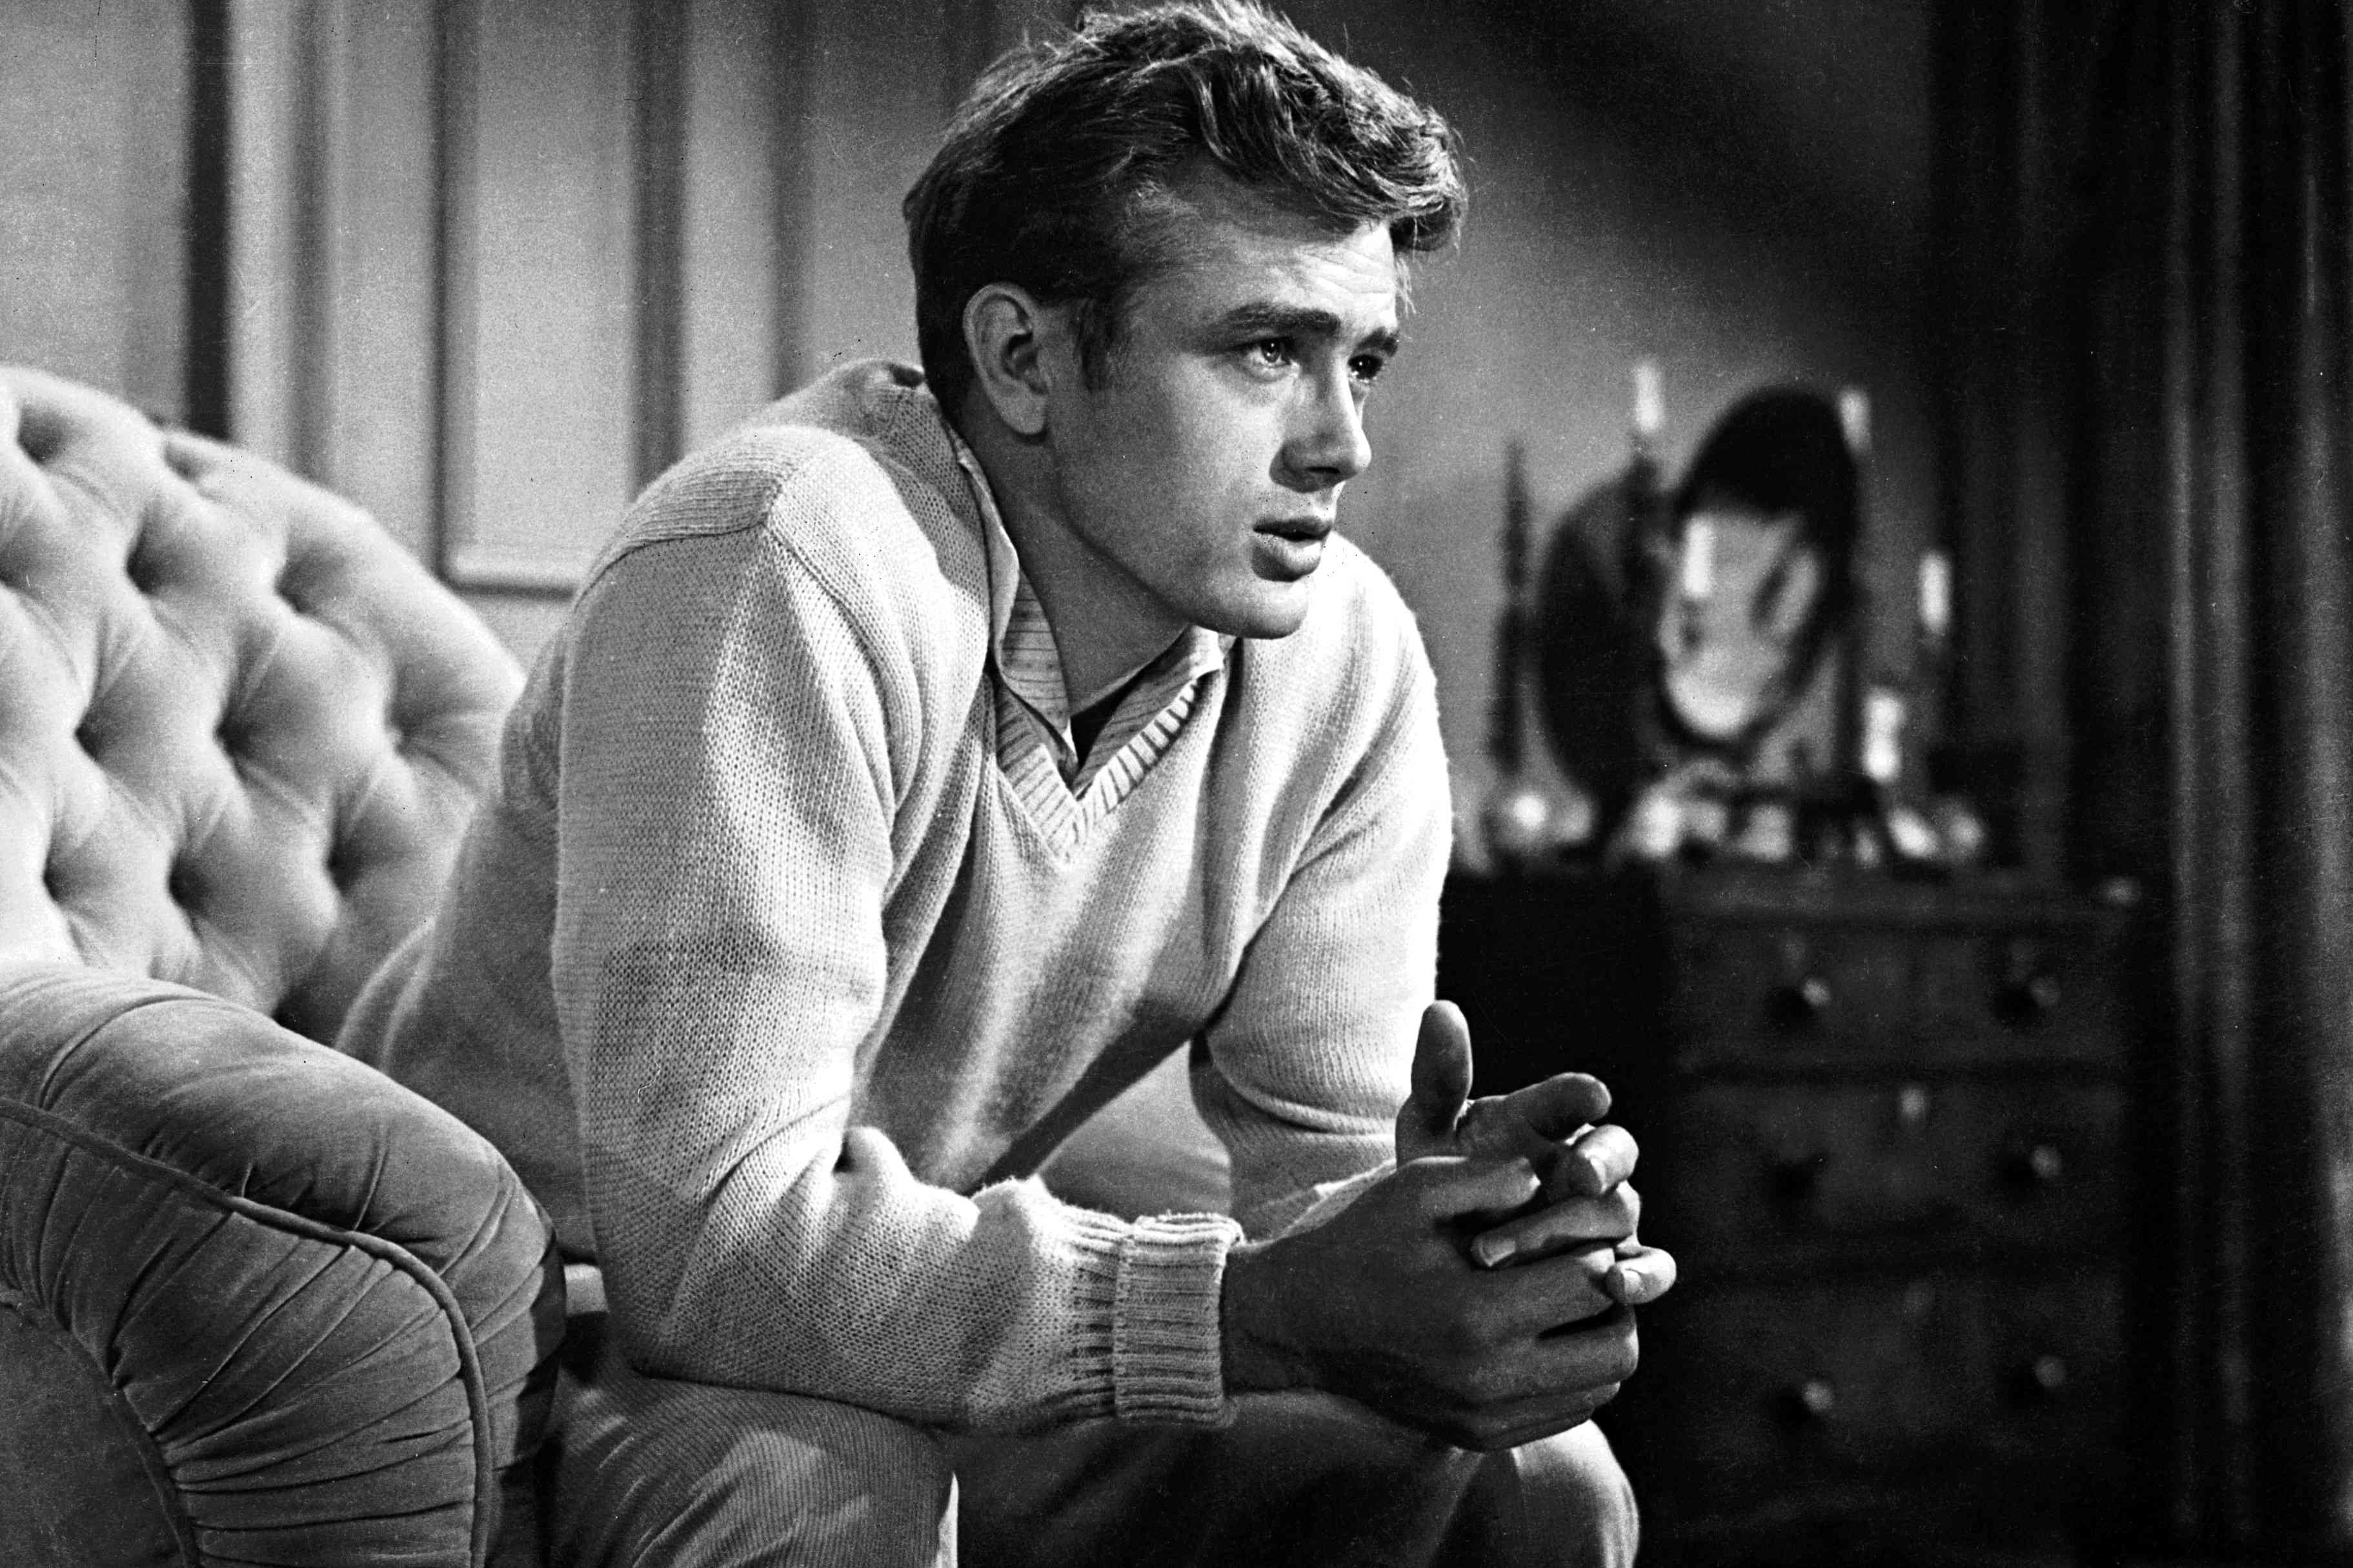 Details of James Dean's Death in a Car Accident